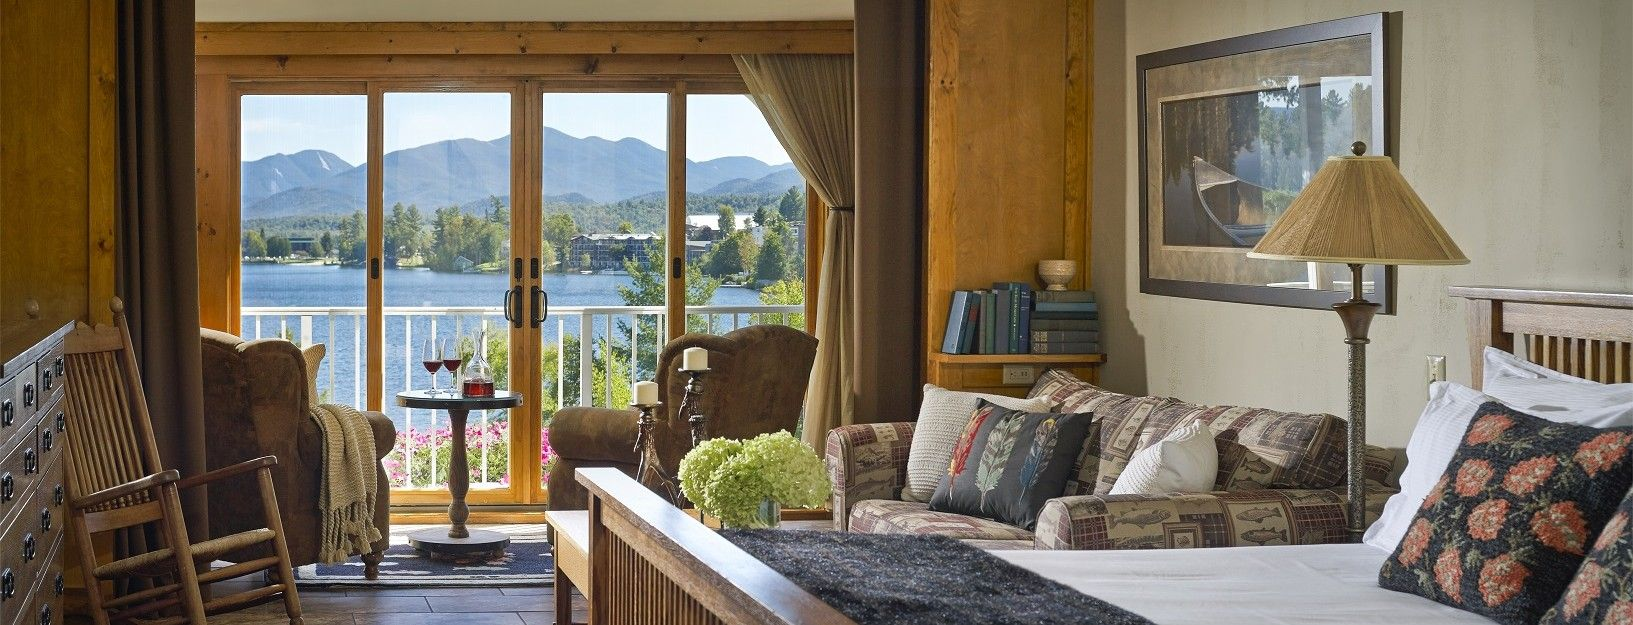 Stay At The Only Aaa Lakefront Hotel In Lake Placid Mirror Inn Is A Beautiful Adirondack Offering Luxury Accommodation Lakeside Dining